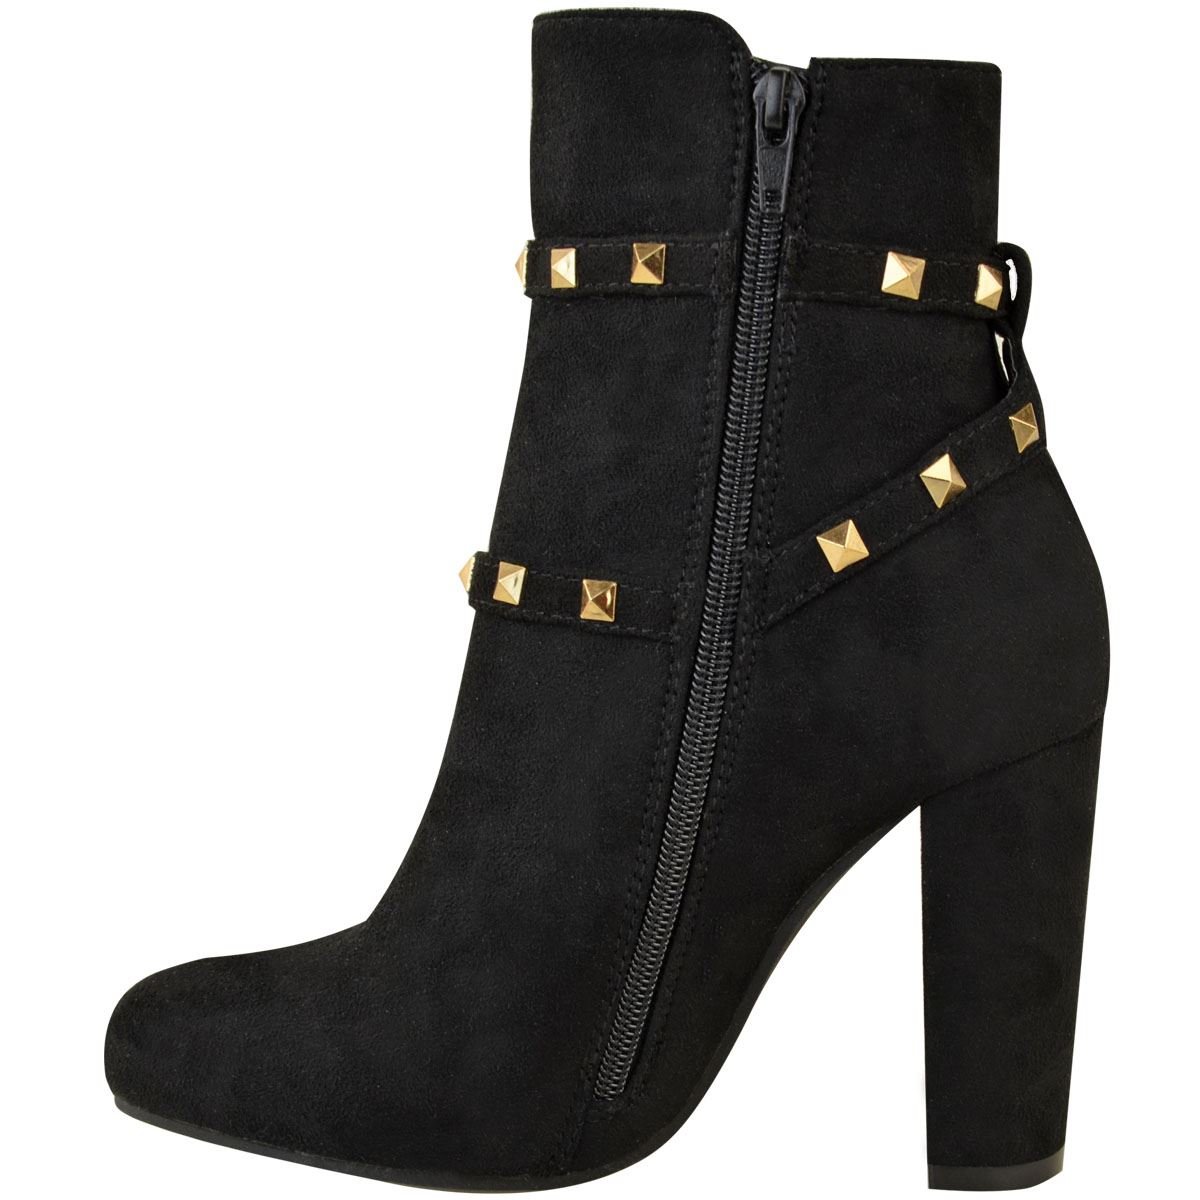 thumbnail 23 - WOMENS-LADIES-LOW-BLOCK-HEEL-CHELSEA-ANKLE-BOOTS-CUT-OUT-LACE-UP-SHOES-NEW-SIZE